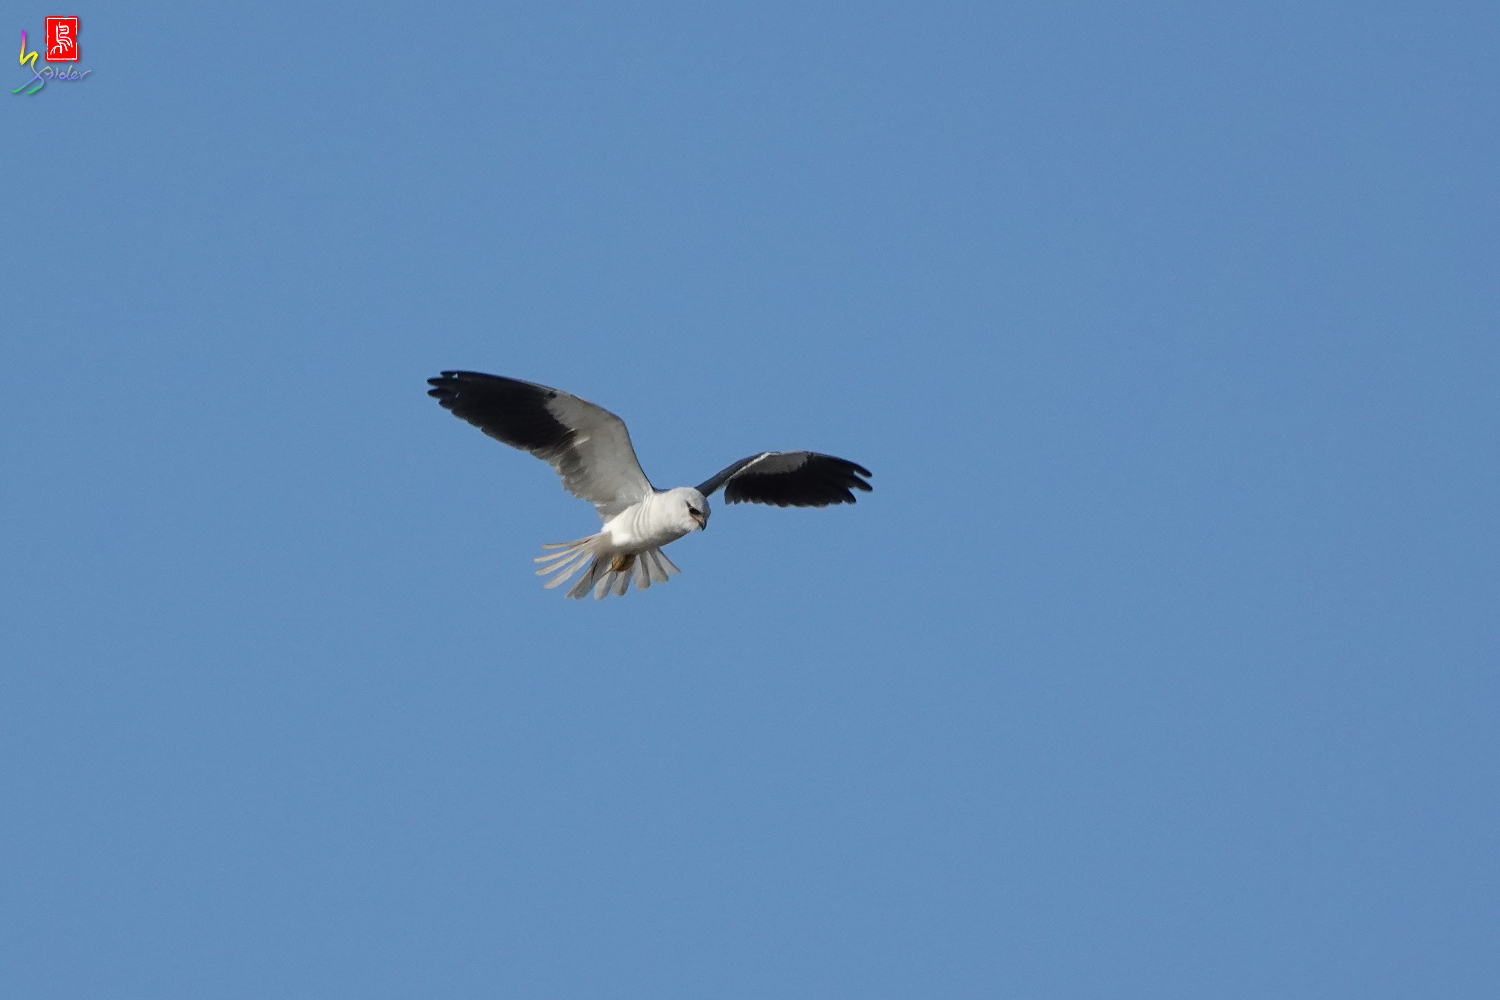 Black-winged_Kite00452